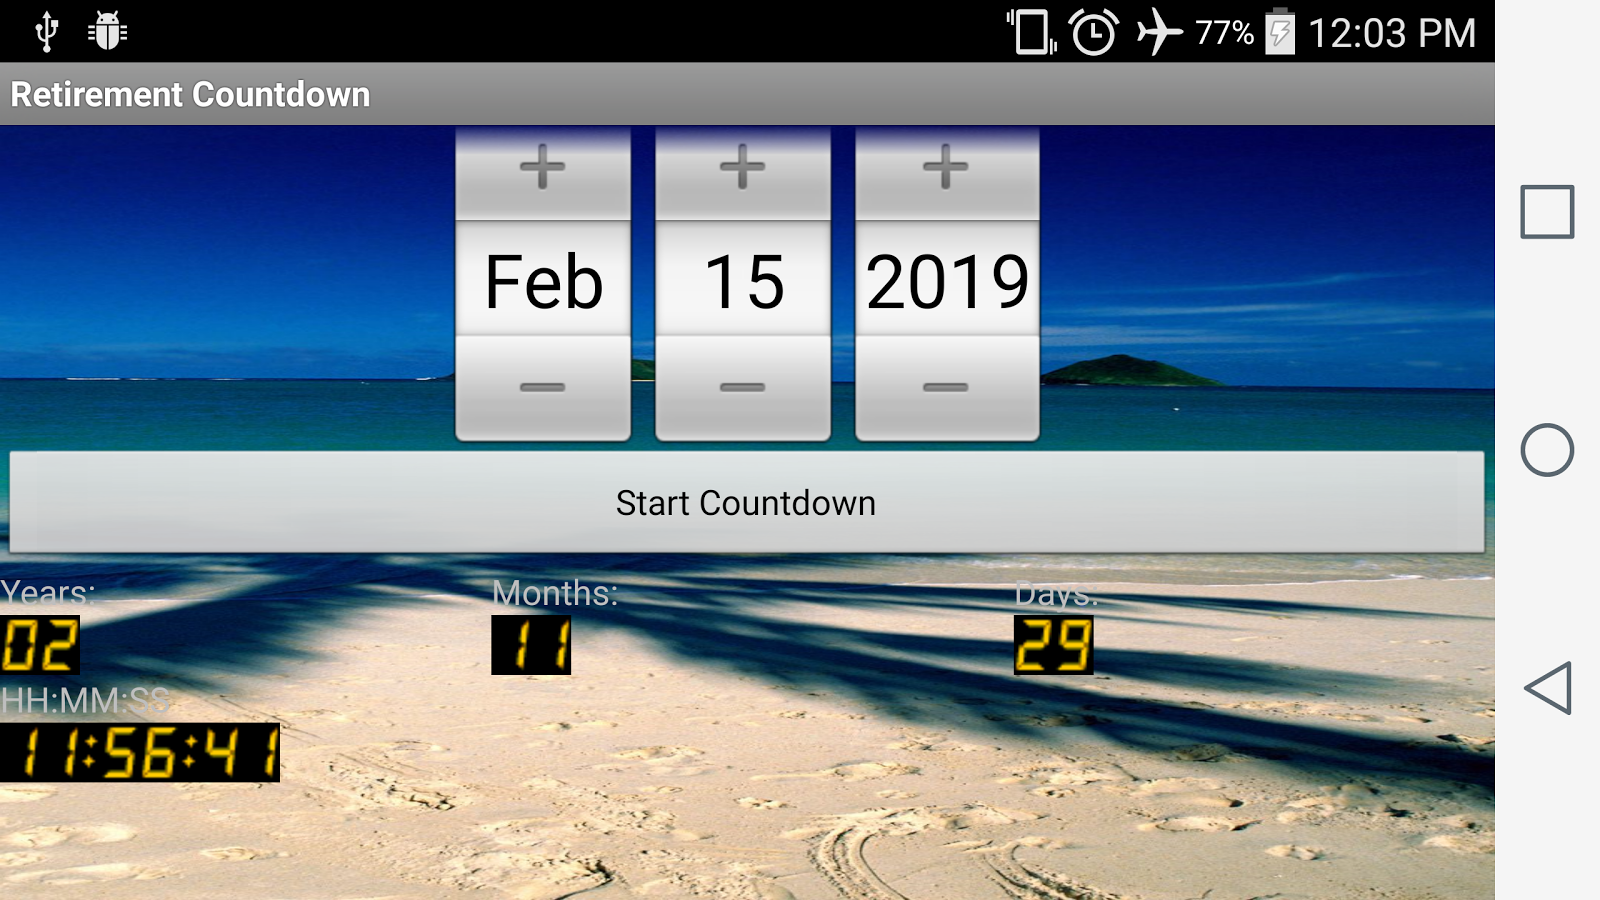 Calendar Countdown Wallpaper : Retirement countdown android apps on google play